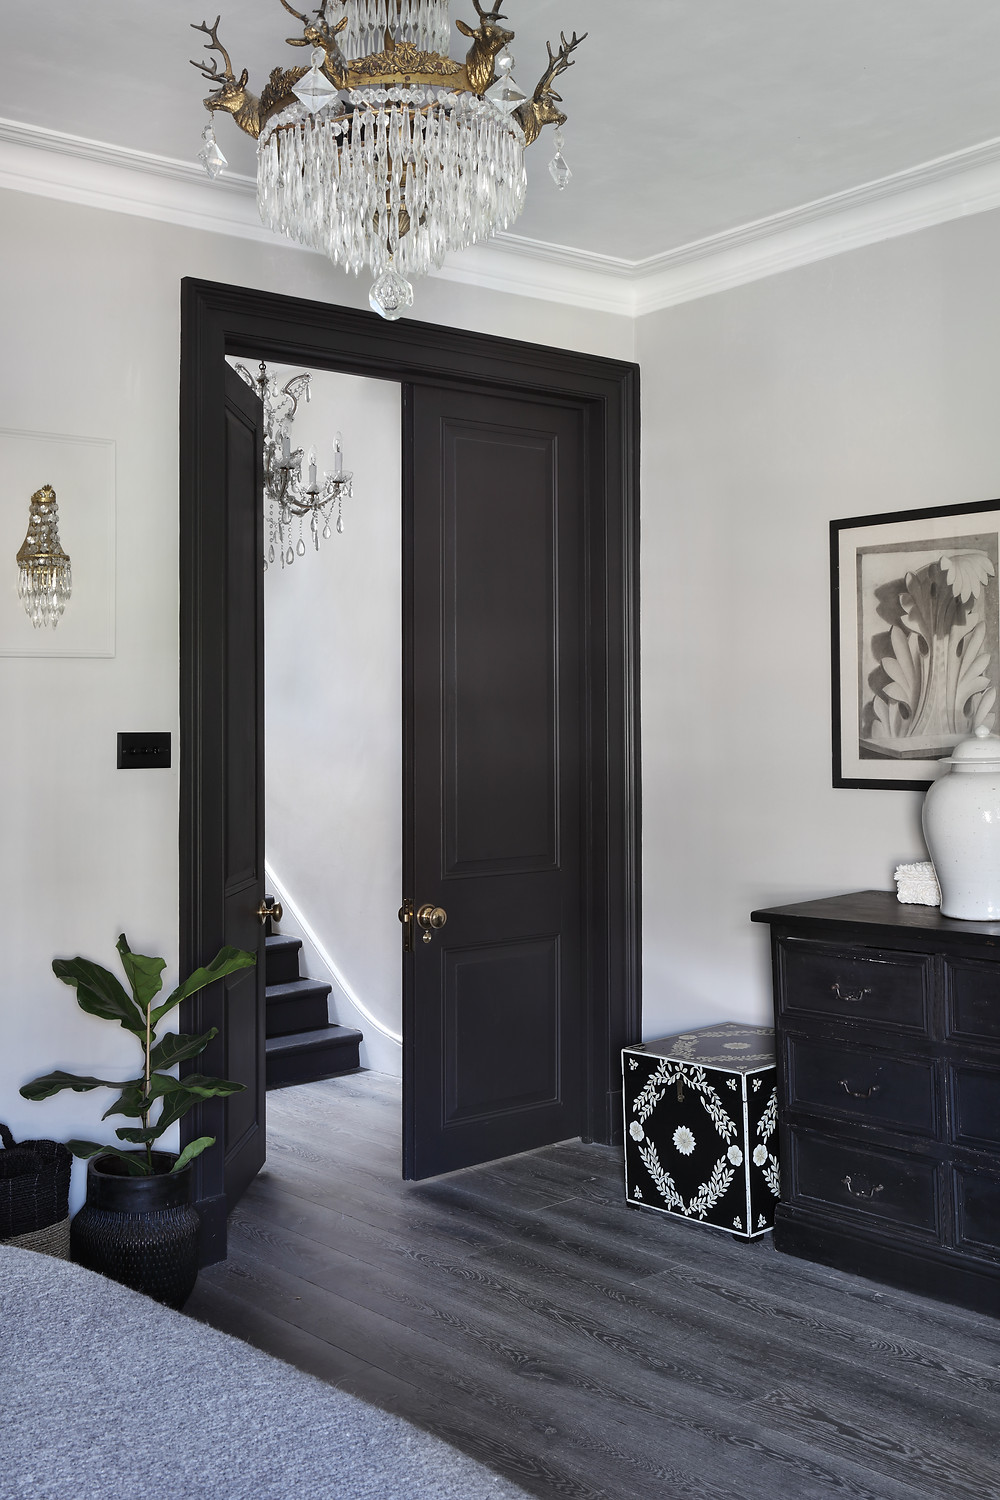 A set of tall double doors has a dramatic impact in this bedroom in Shepherds Bush